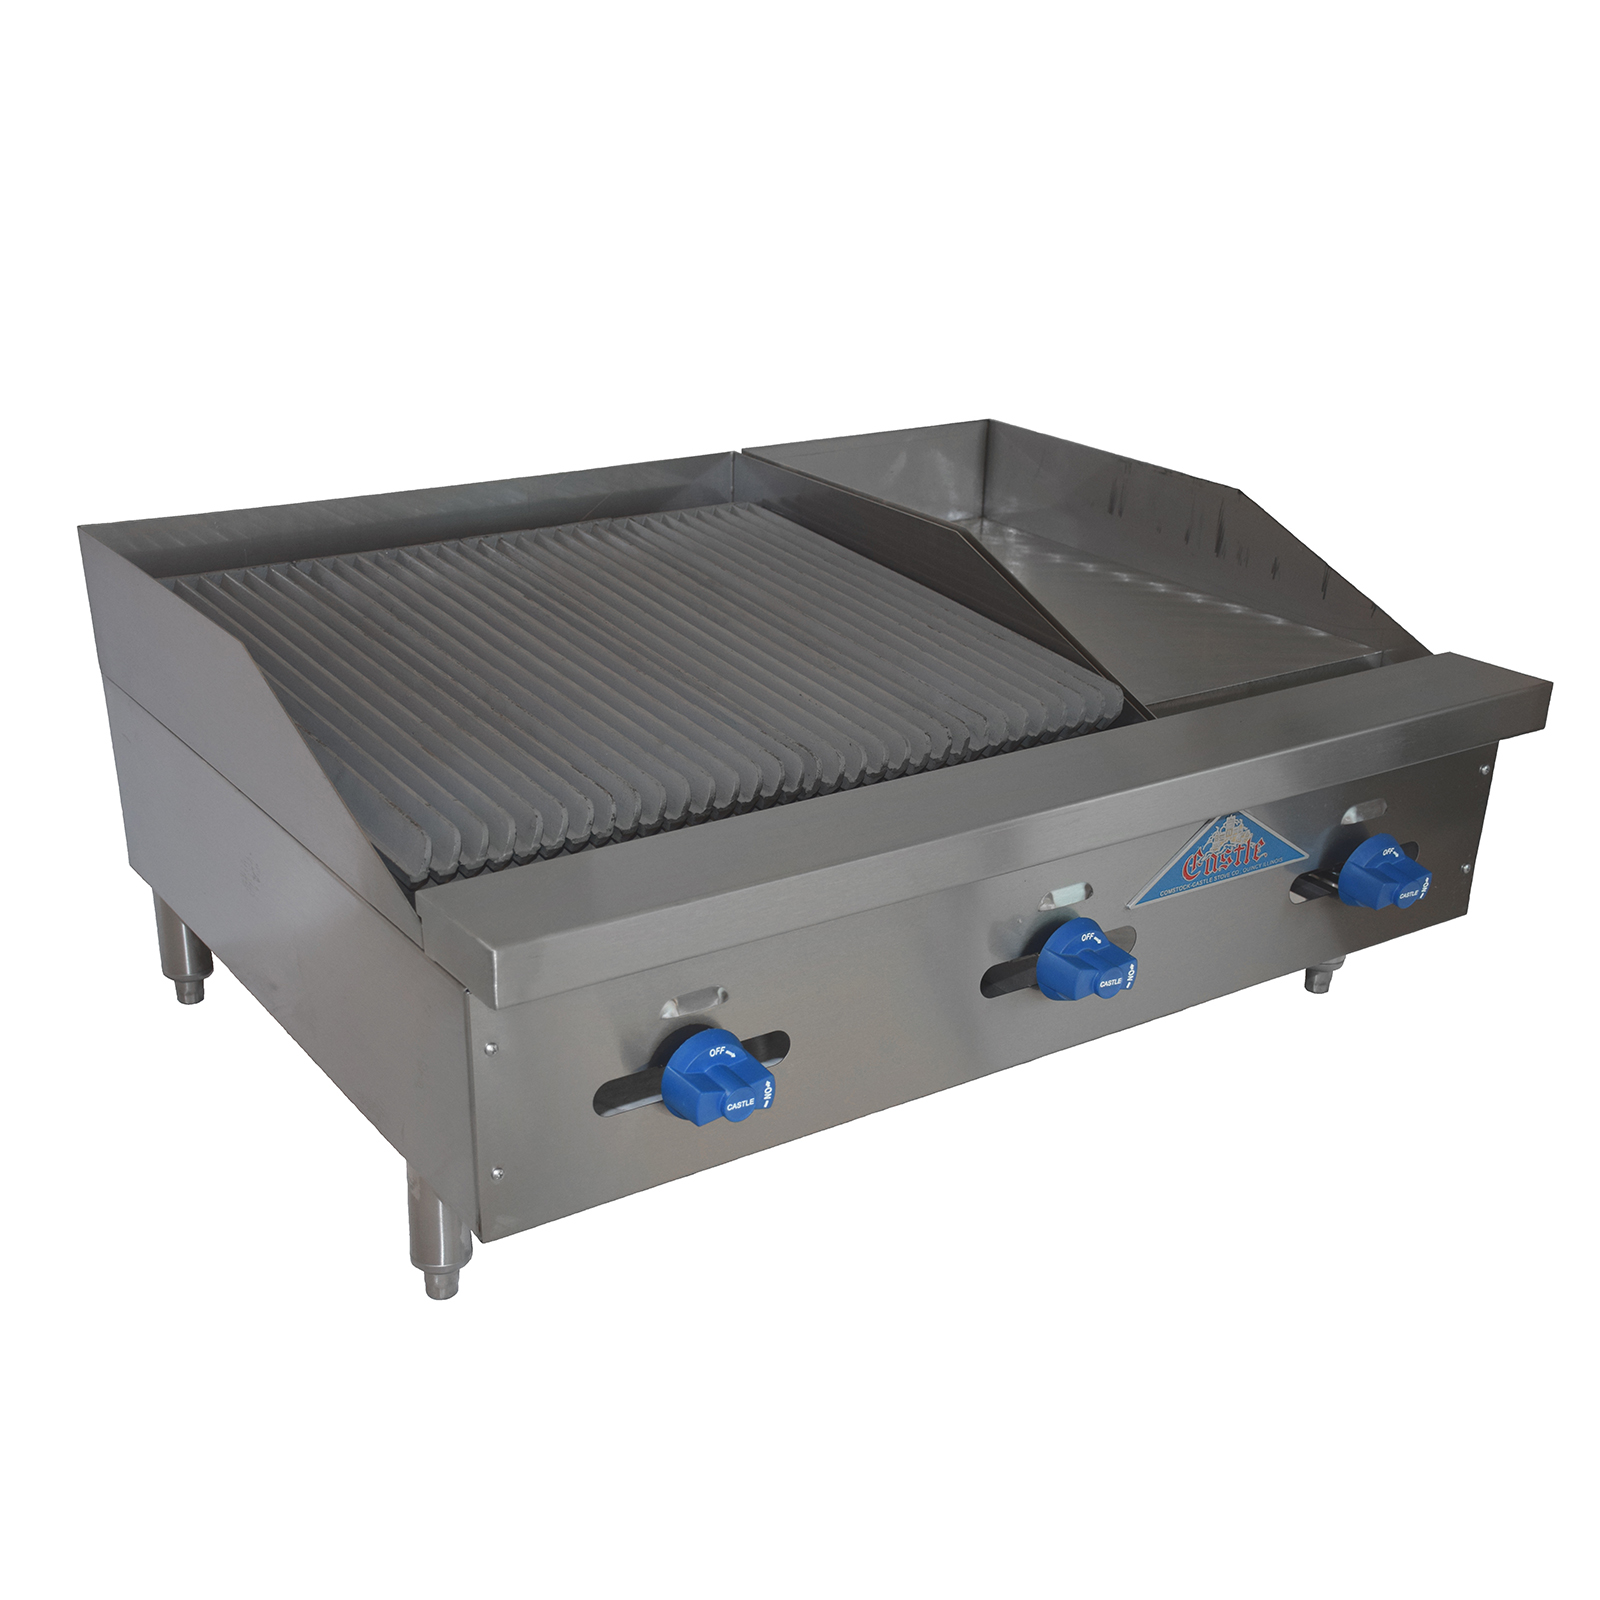 Comstock-Castle FHP36-12-2RB griddle / charbroiler, gas, countertop